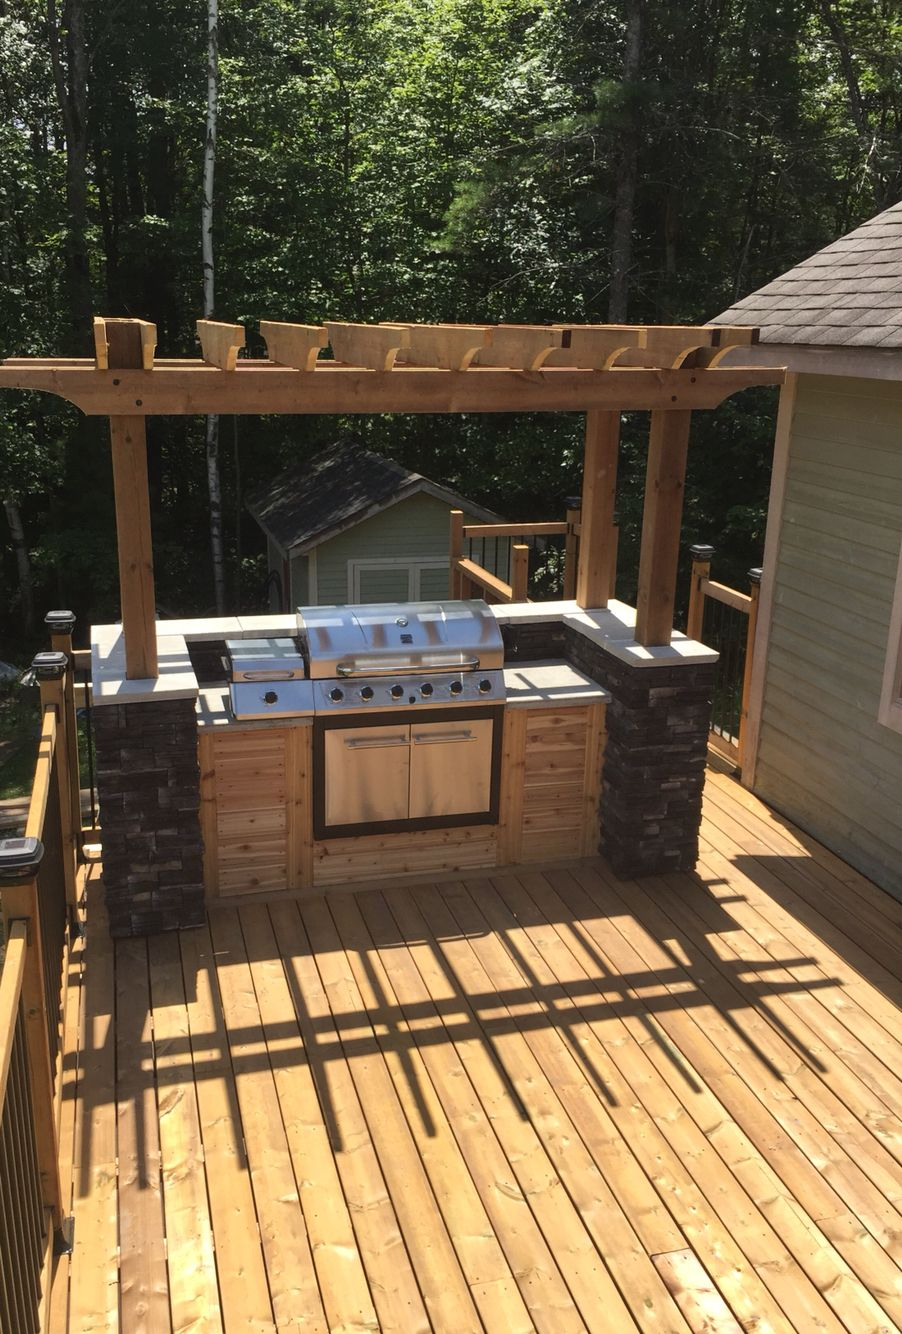 7 Outdoor Kitchen Ideas For The Best Summer Yet Yard And Garden throughout Backyard Bbq Area Design Ideas